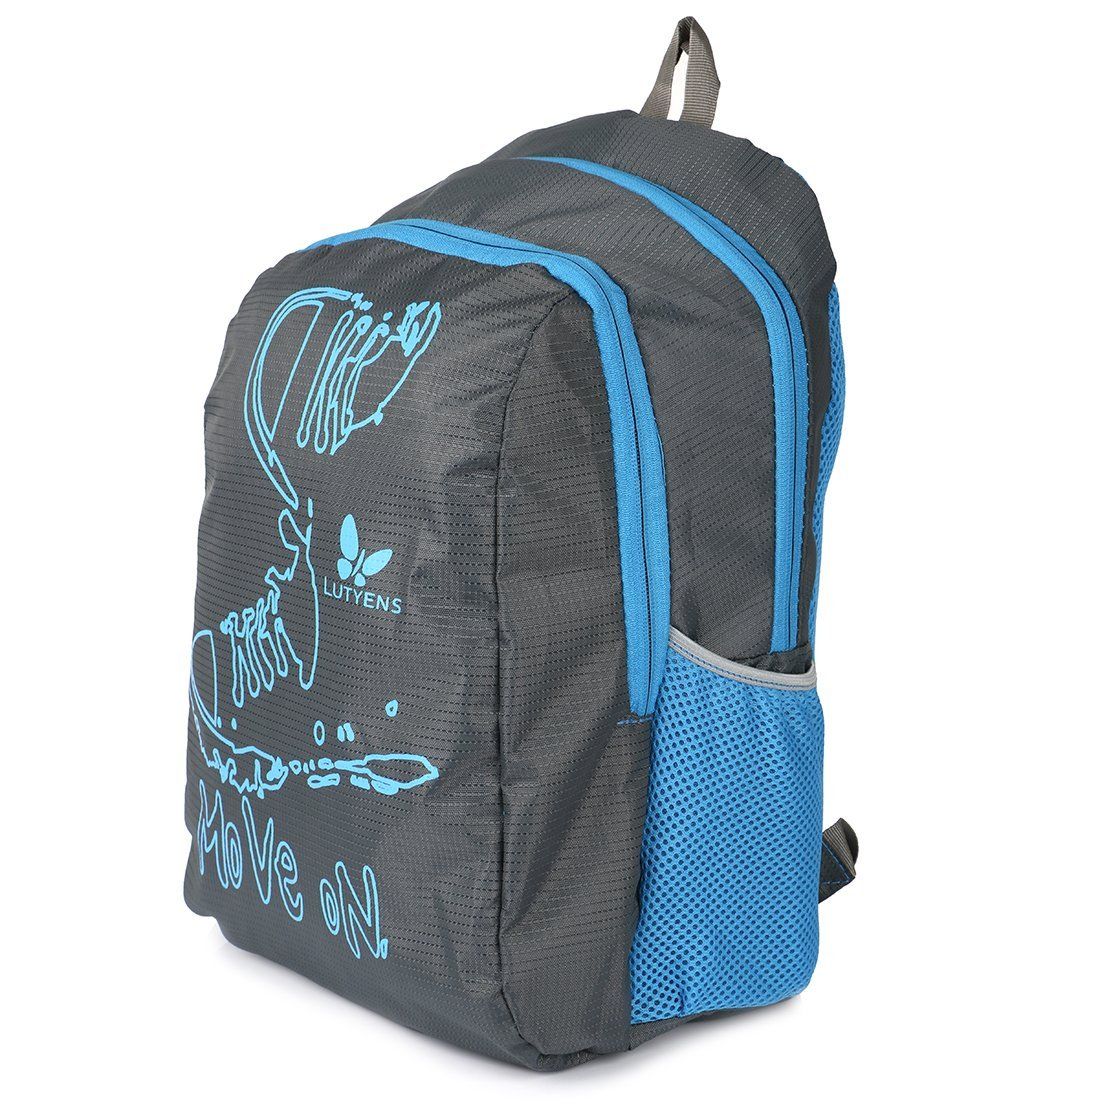 Lutyens Polyester Black Blue School Bags (17 Liters) at 70% off discount offer